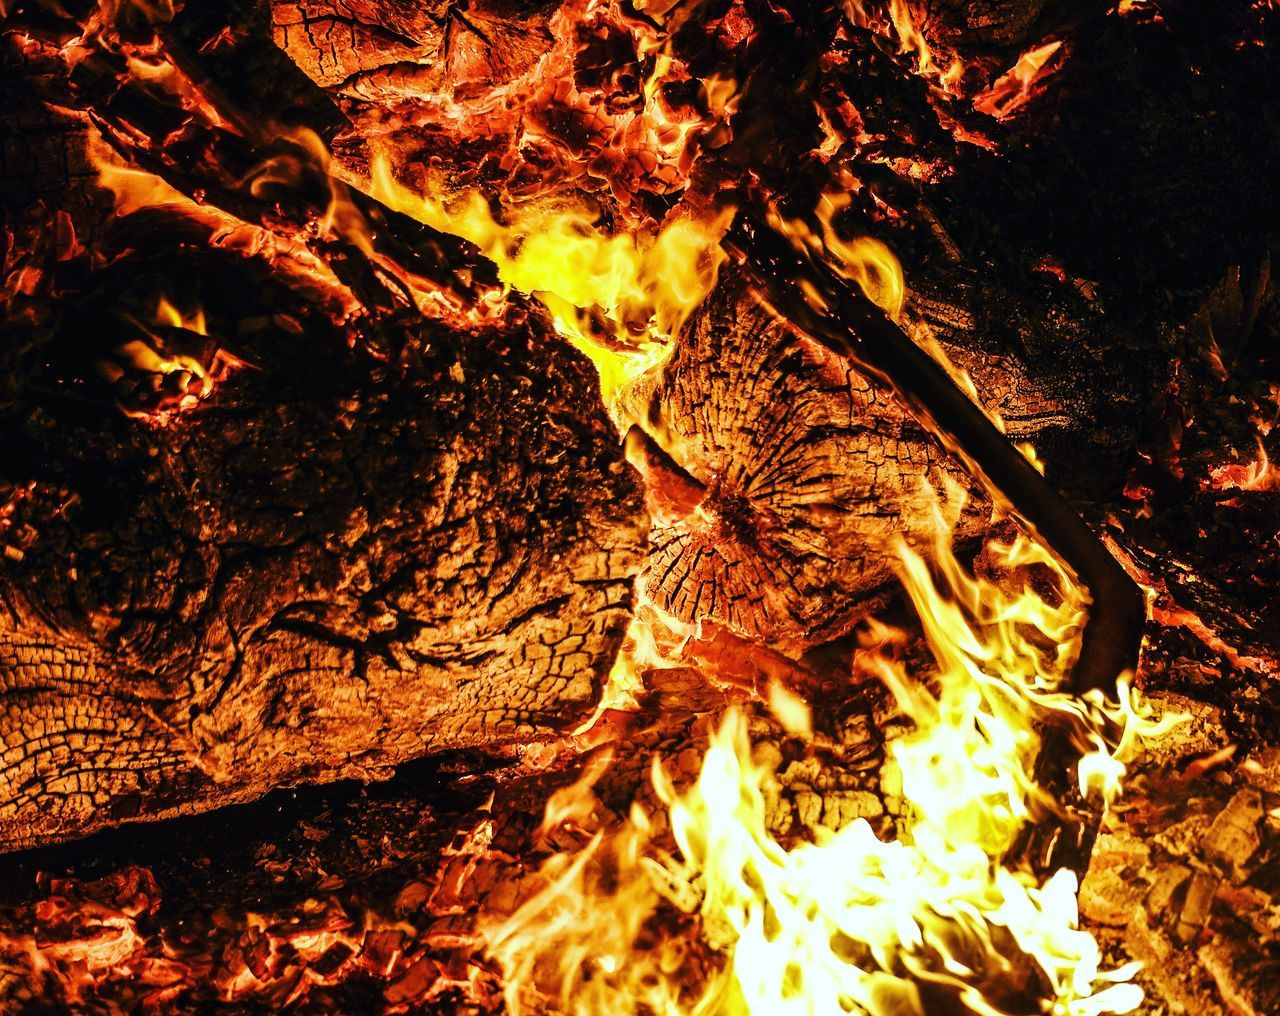 Beautiful stock photos of fire, Horizontal Image, abstract, bonfire, burning